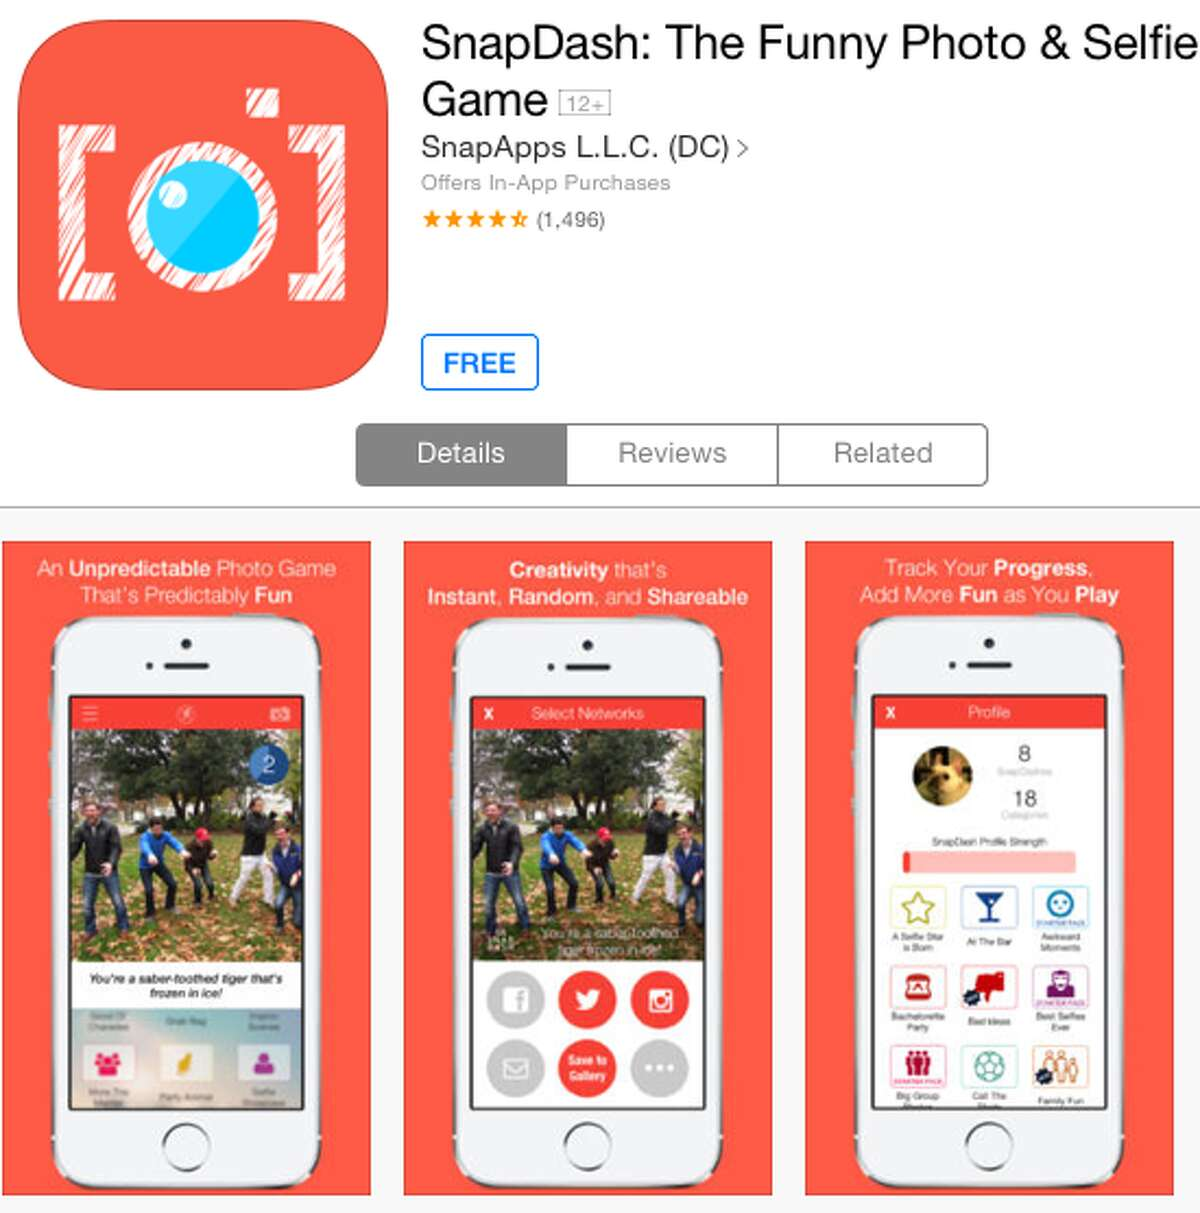 Want a cool photo of yourself but not exactly sure what you should be doing in the photo? SnapDash suggests a whacky pose to its users just seconds before the photo is taken to see how quickly selfie subjects can respond. The results are often hilarious.